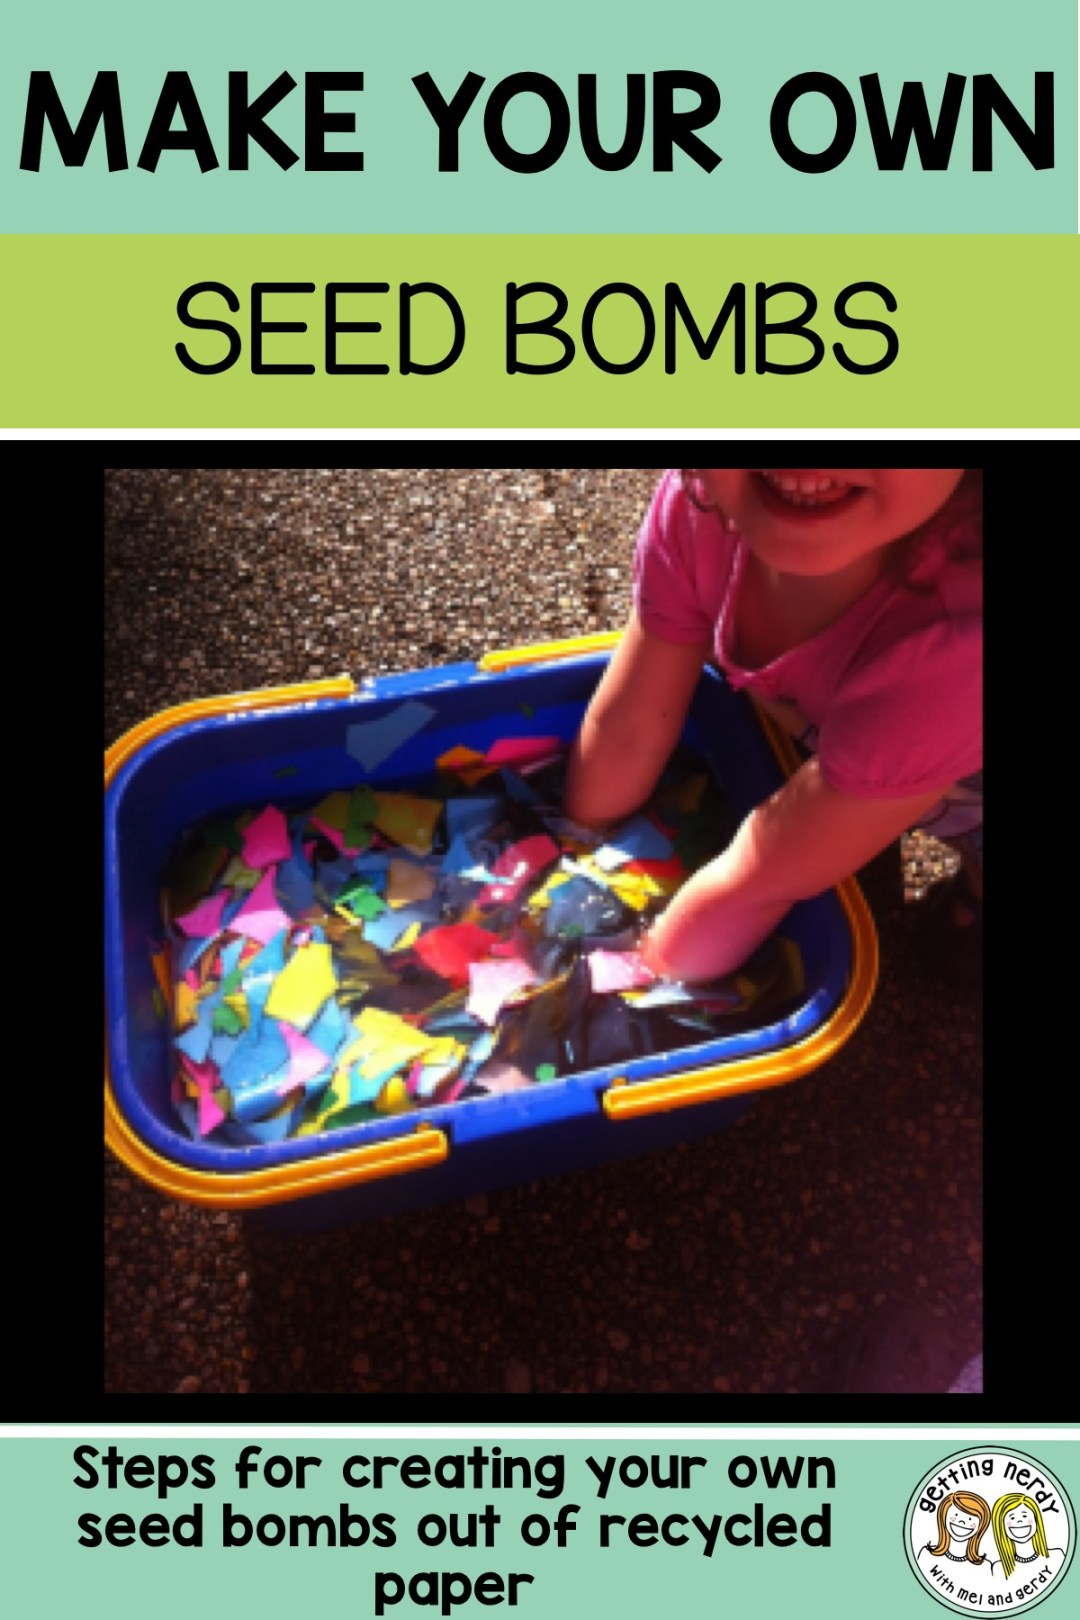 Looking for something to do with your paper scraps at the end of the school year? Make seed bombs - learn how here! #gettingnerdyscience #lifescience #craft